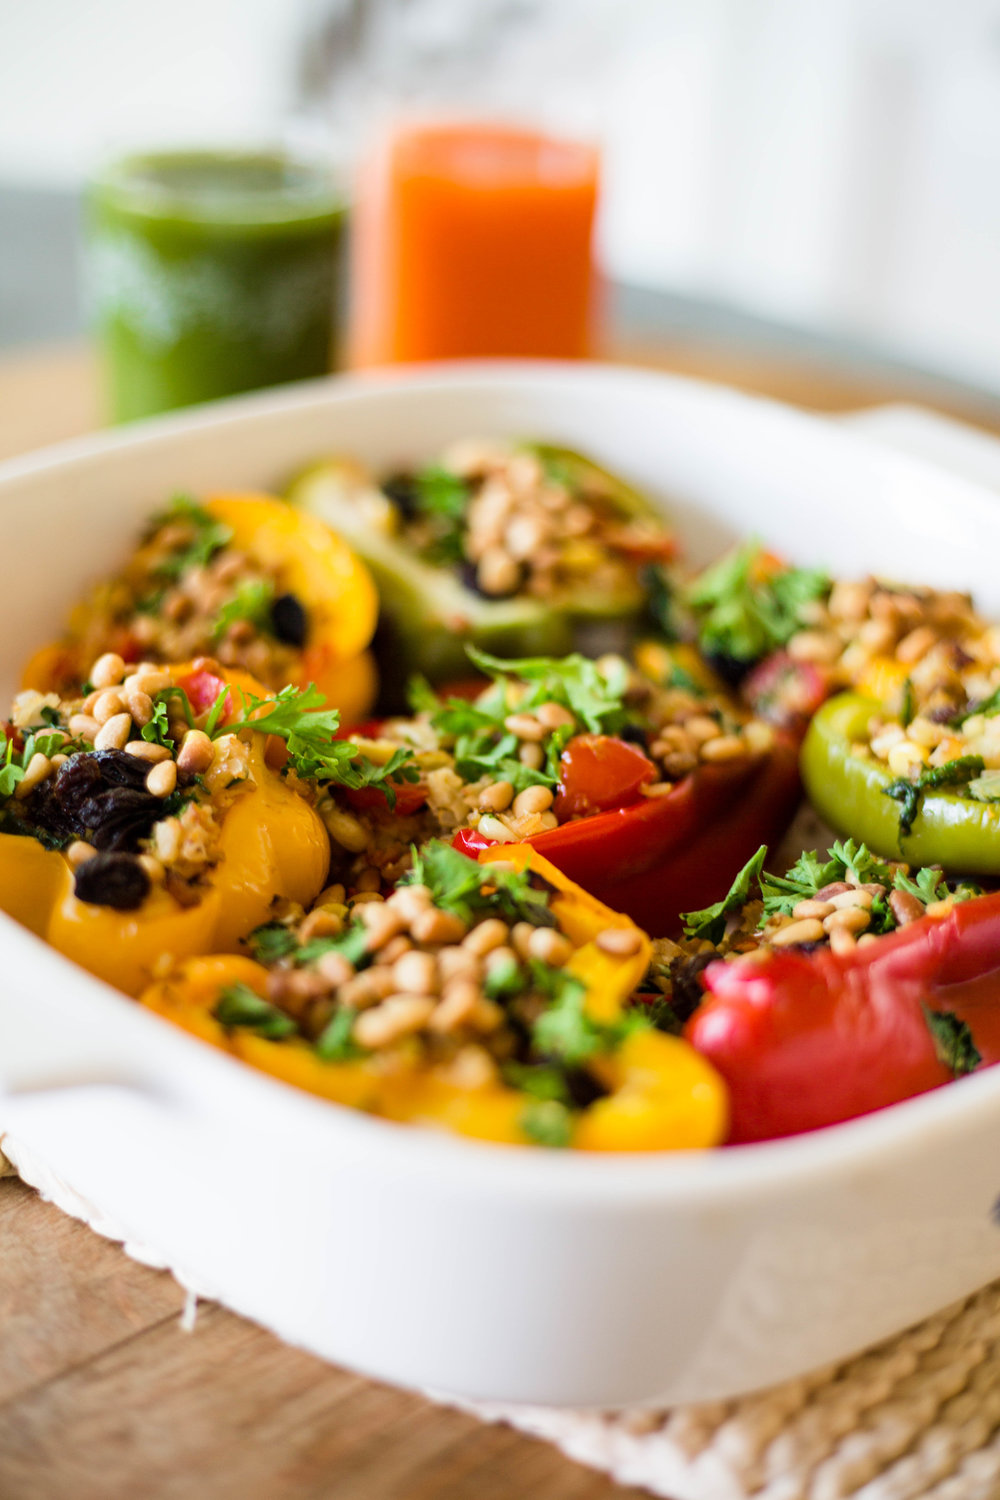 Cauliflower & Raisin Stuffed Bell Peppers | #purekitchenblog #puremamas #vegan #glutenfree